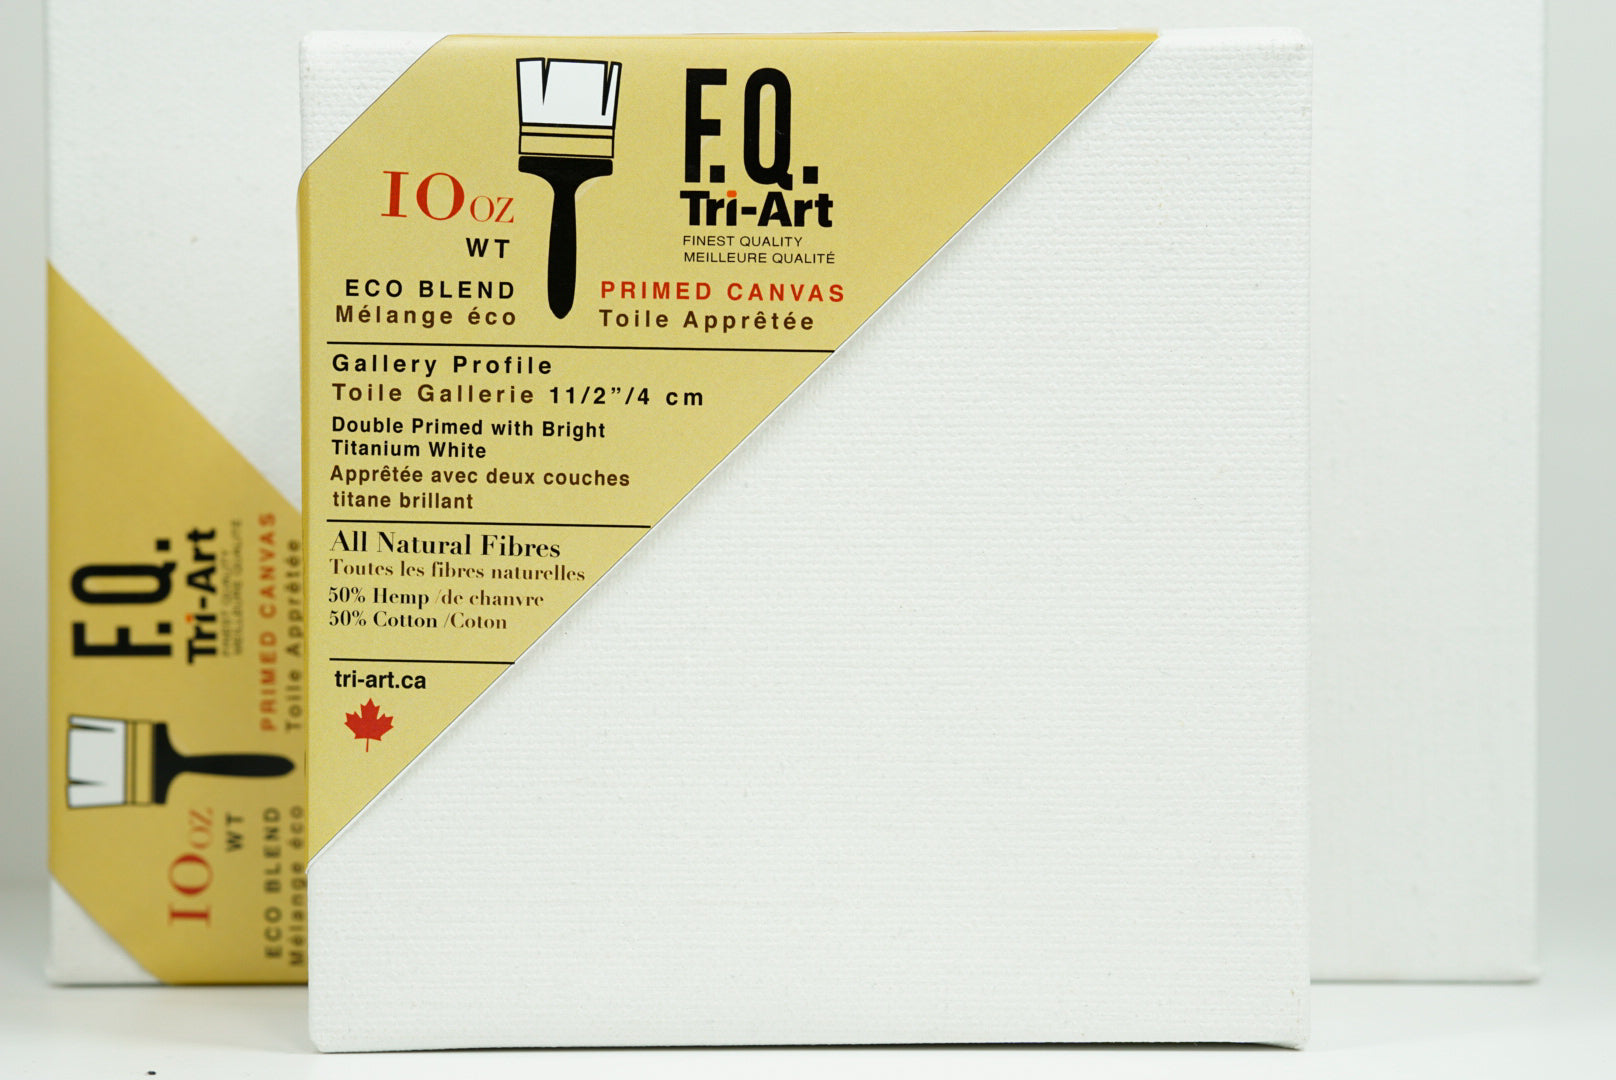 "Tri-Art FQ Stretched Canvas - Artist Gallery 1 1/2"" Profile Primed - 30x40"" (4438790078551)"